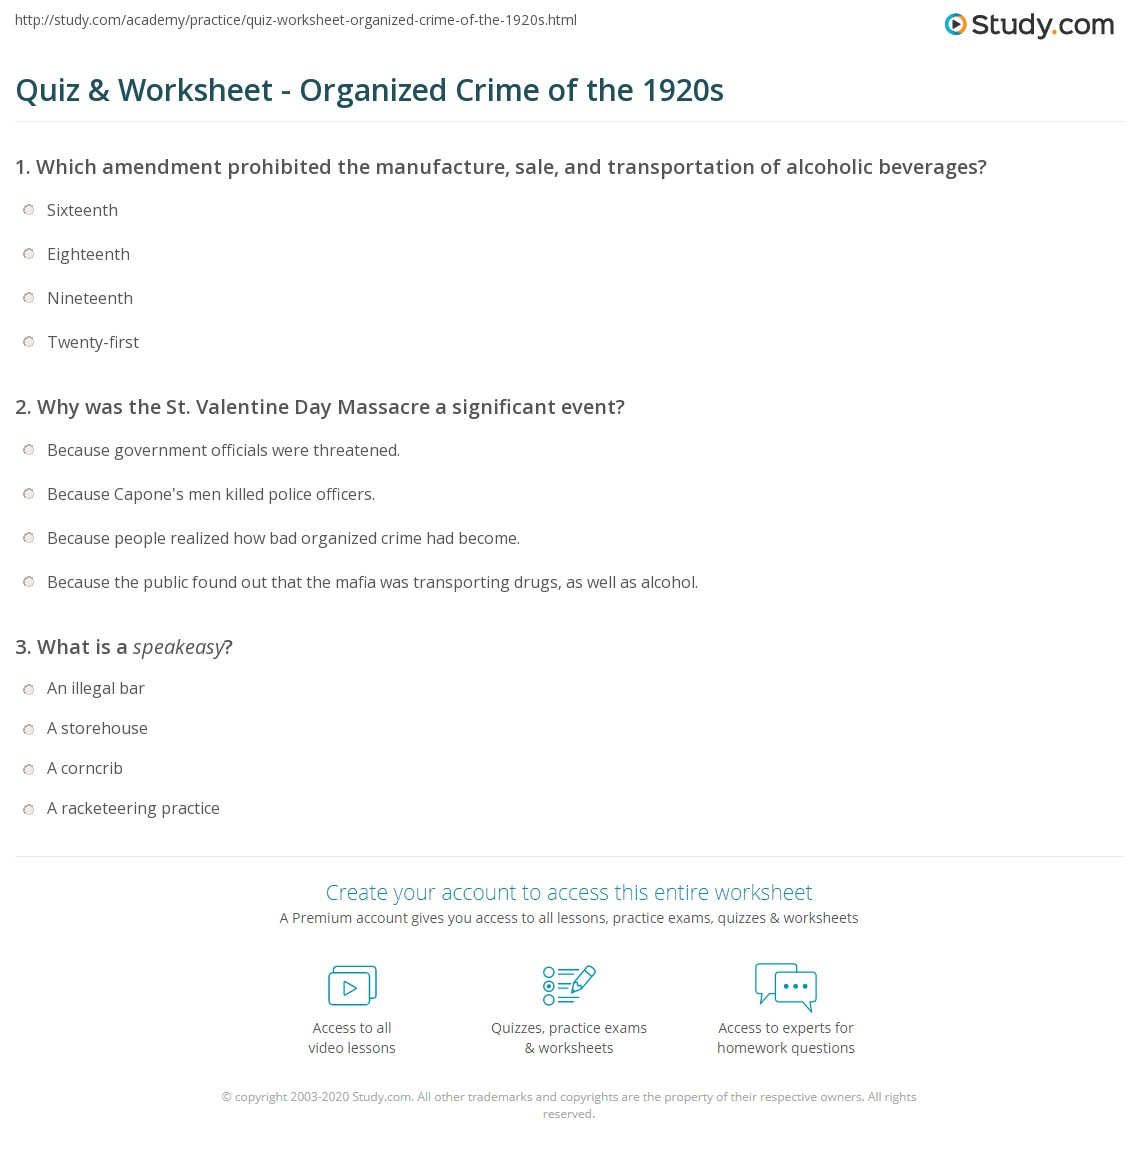 quiz worksheet organized crime of the 1920s